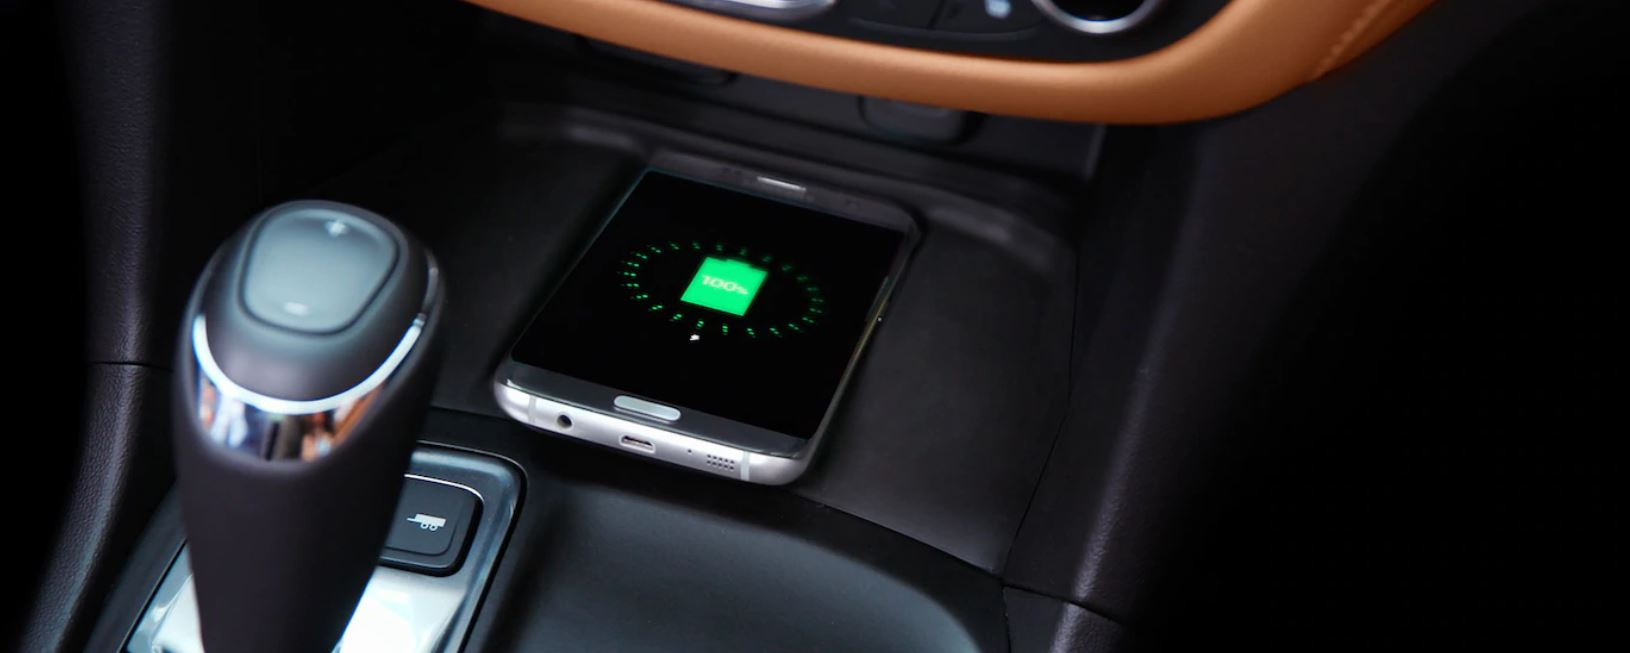 2018 Chevrolet Equinox Wireless Charging